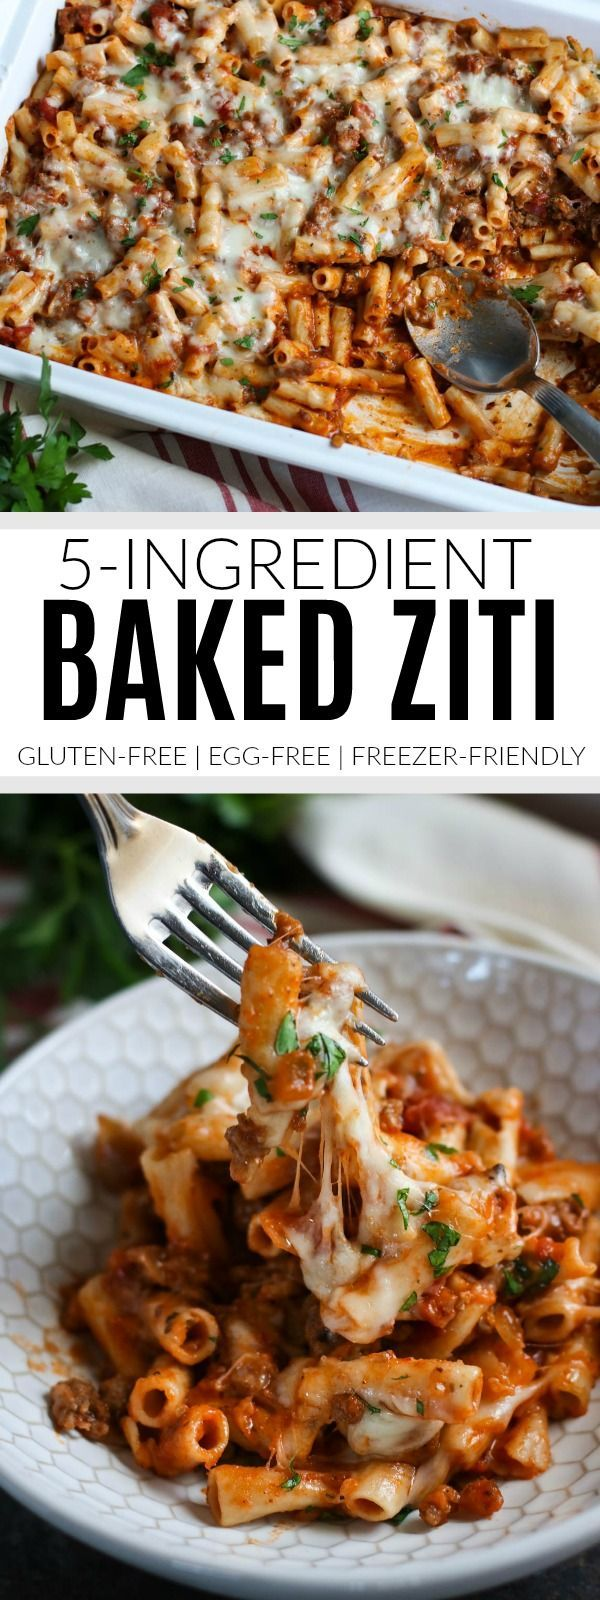 5-Ingredient Baked Ziti | gluten-free baked ziti | egg-free baked ziti | freezer-friendly baked ziti | easy baked ziti recipe | gluten-free pasta recipes | gluten-free dinner recipes || The Real Food Dietitians #glutenfreedinner #bakedziti #easydinners